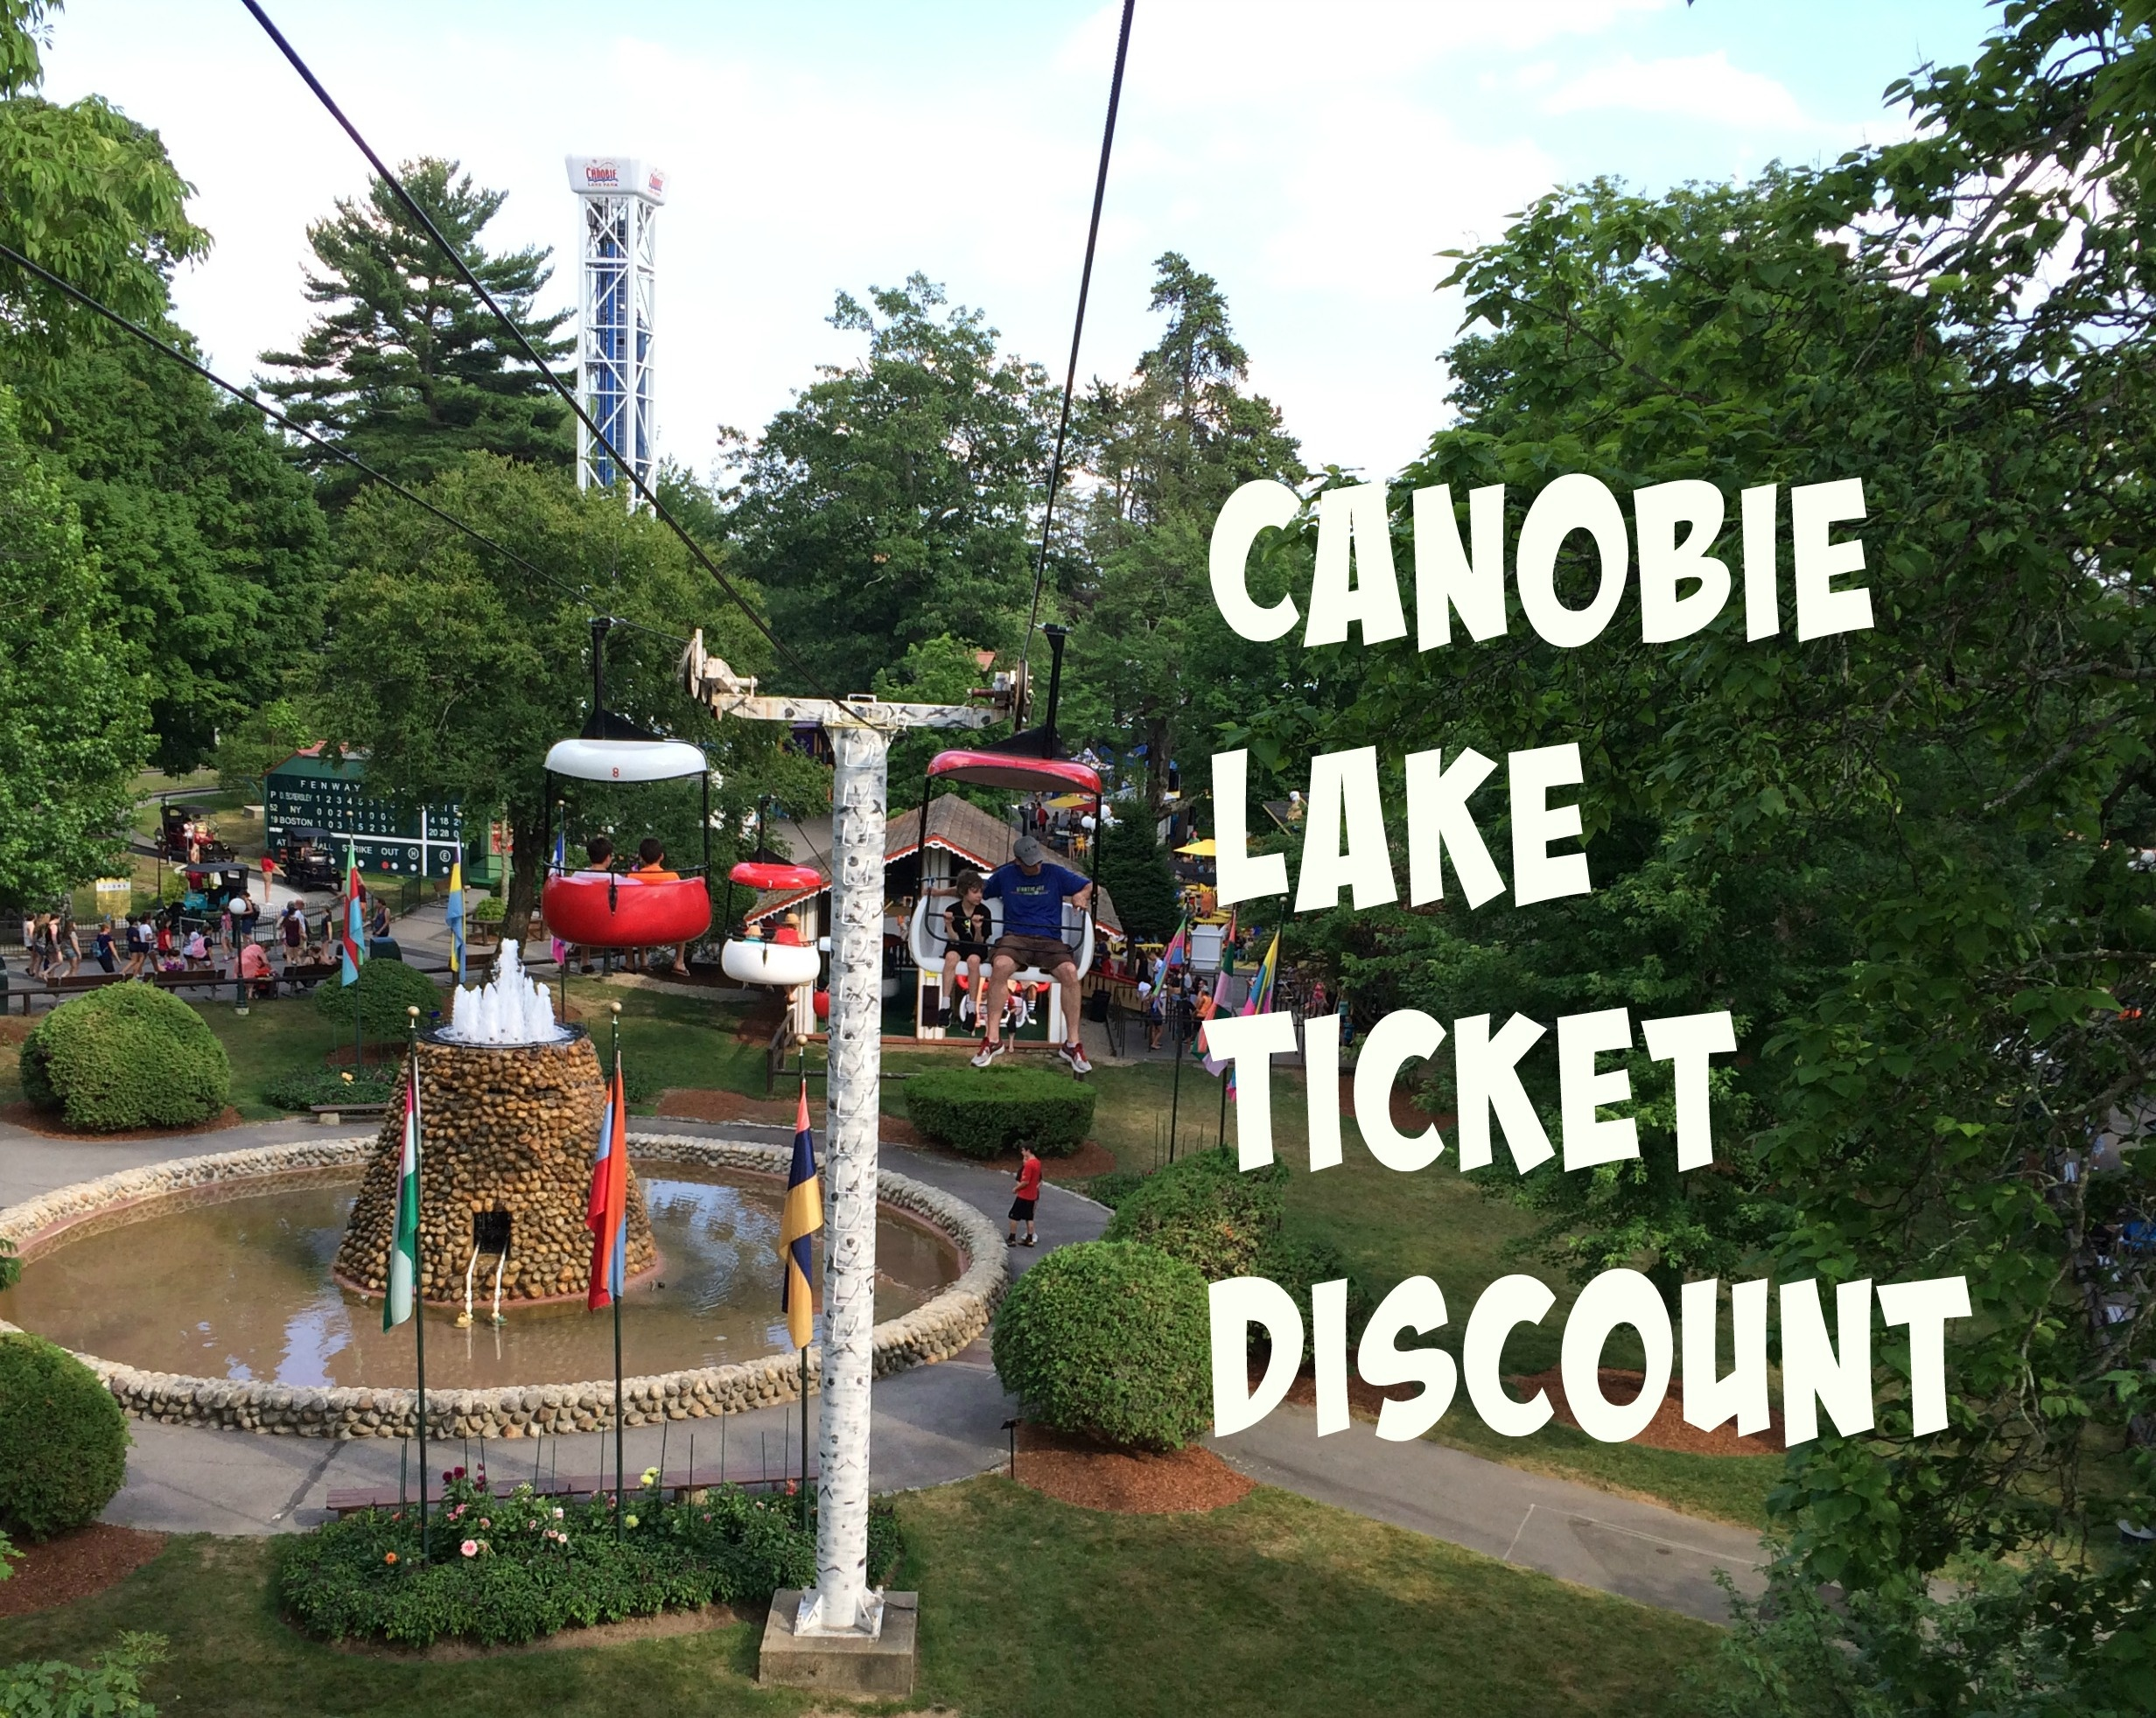 Canobie Lake Ticket Discount - Boston Living On The Cheap - Free Printable Coupons For Canobie Lake Park